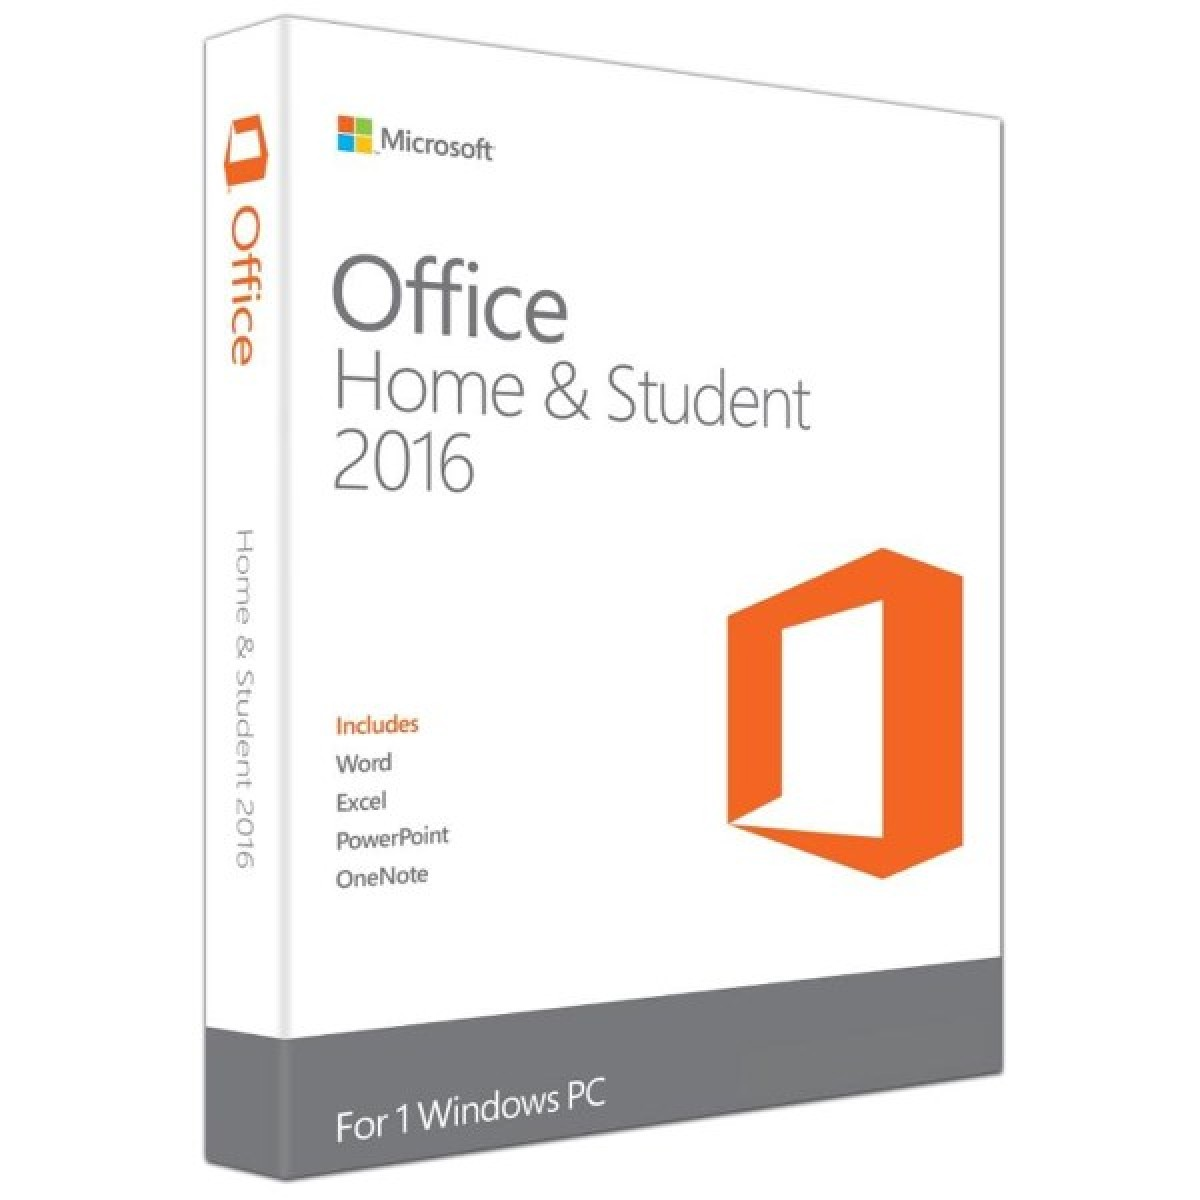 Activate office 2016 product key - Activate Office 2016 Product Key 40